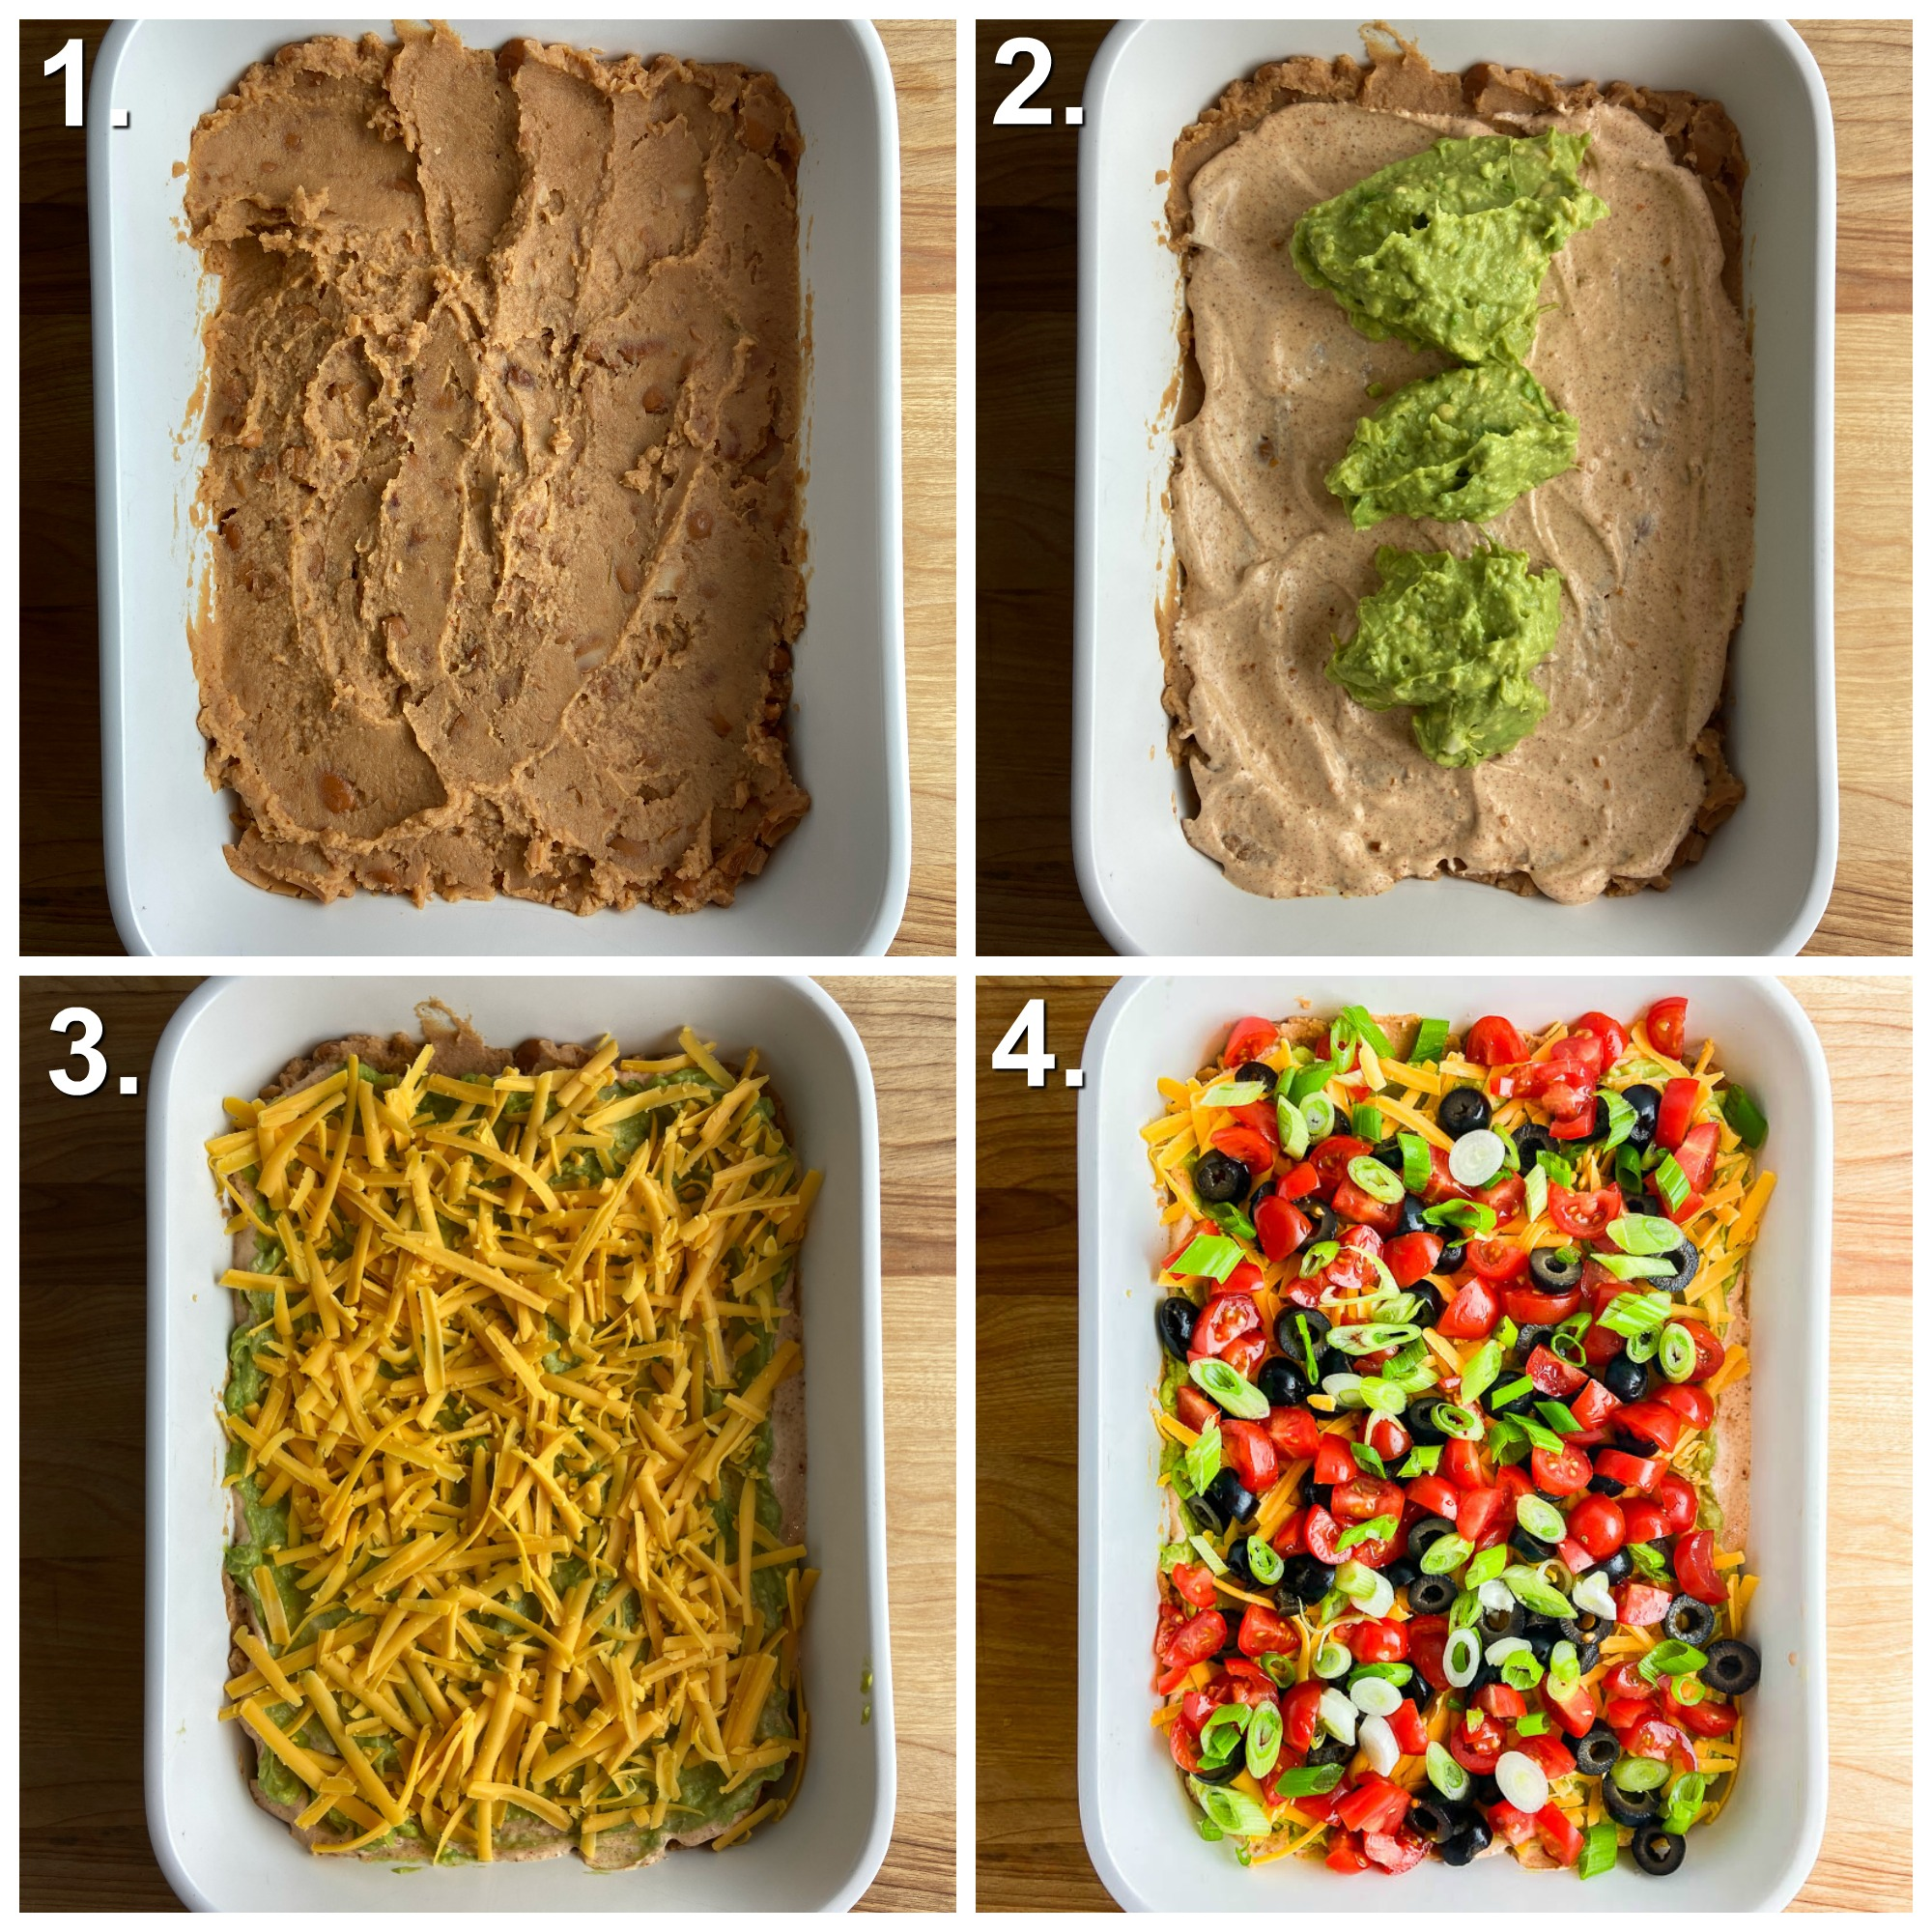 4 photos showing the different layers of seven layer dip in a white dish.